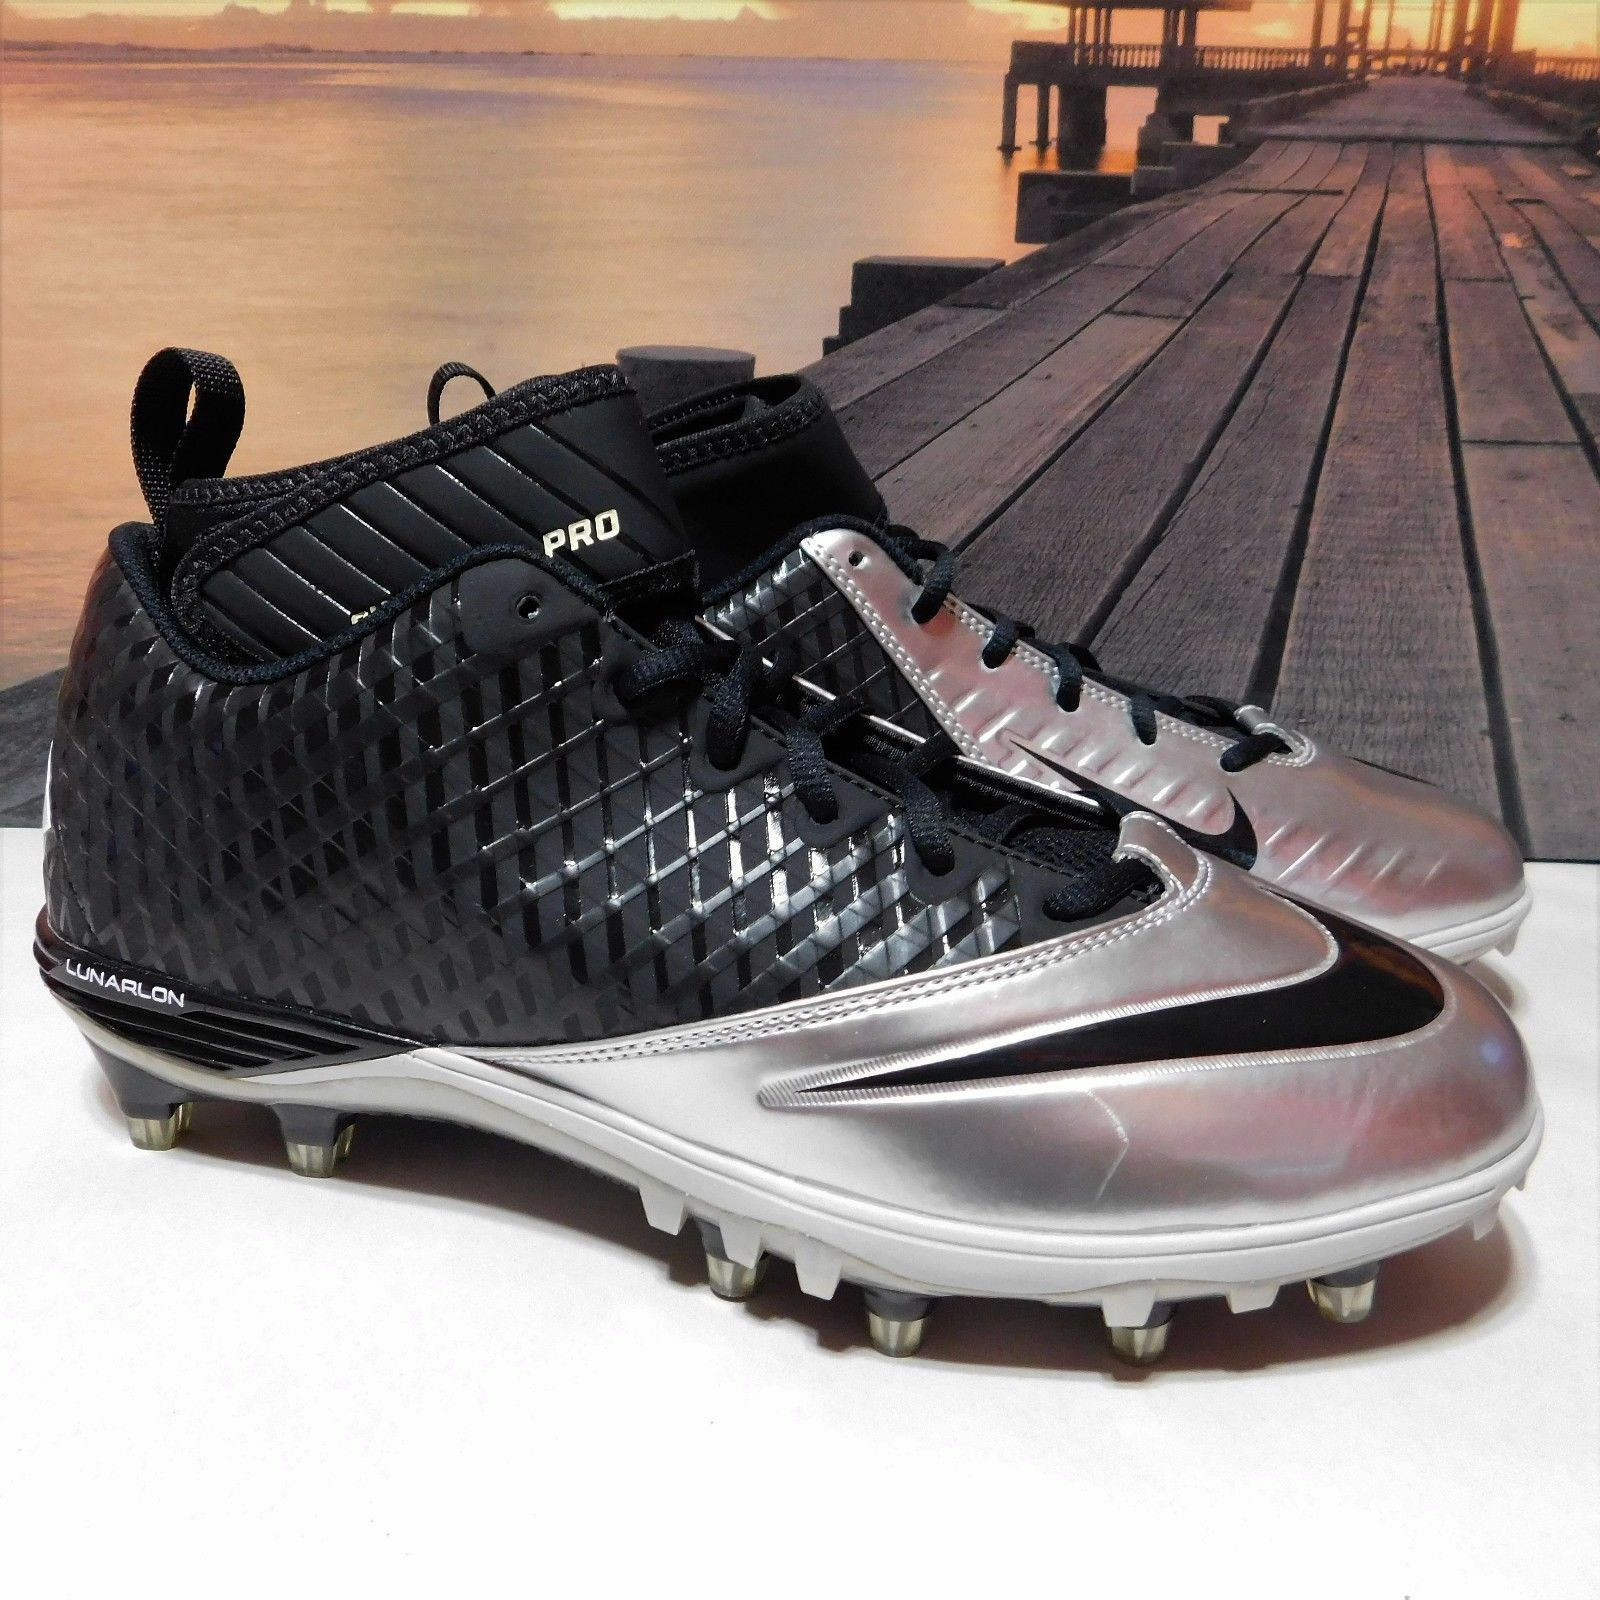 New Mens 11.5 Nike Lunar Superbad Black Pro TD Football Cleats Black Superbad Silver 534994-023 6a8d7f